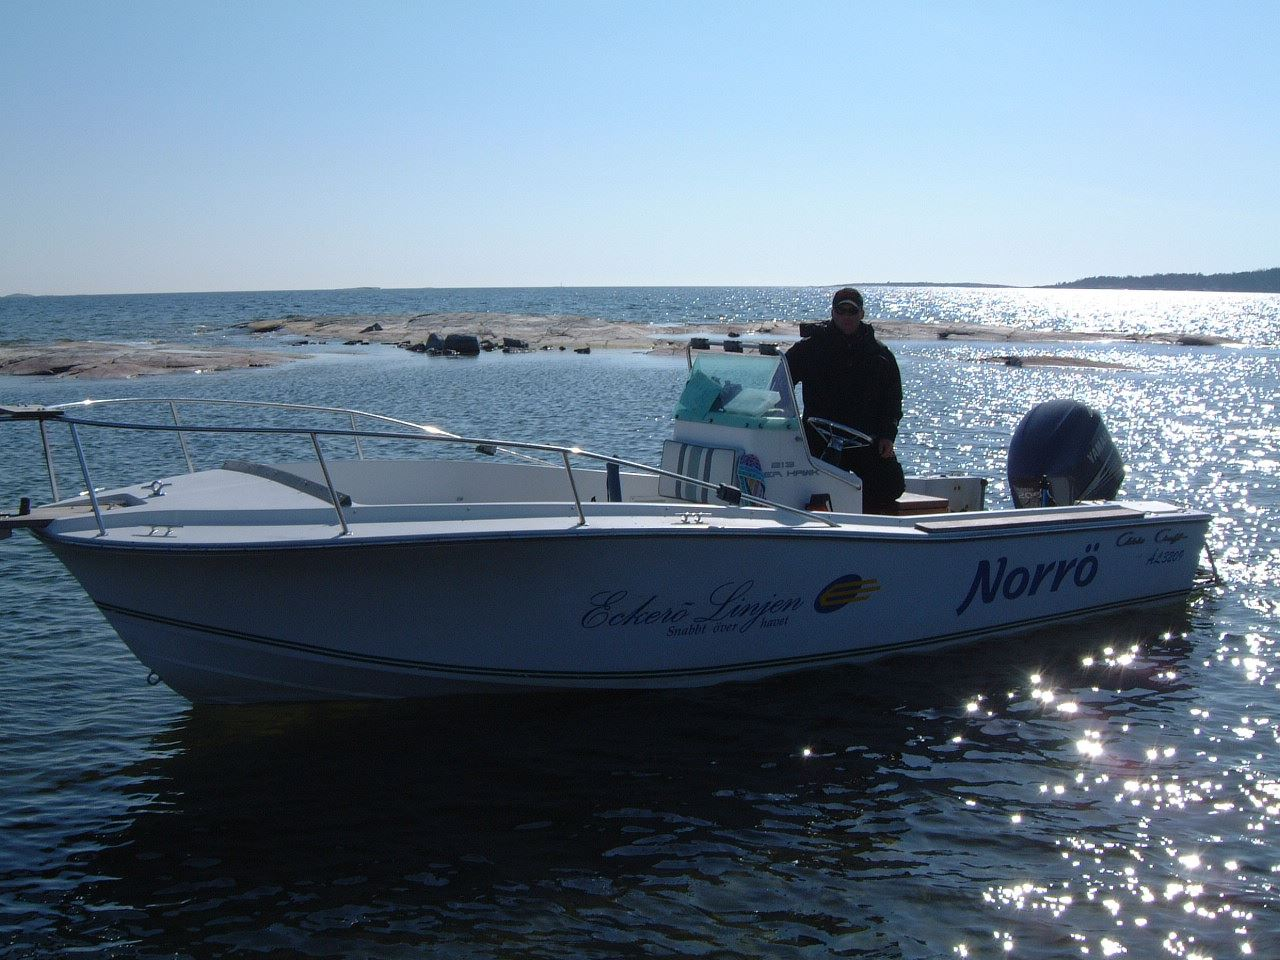 Norrö Fishing guide